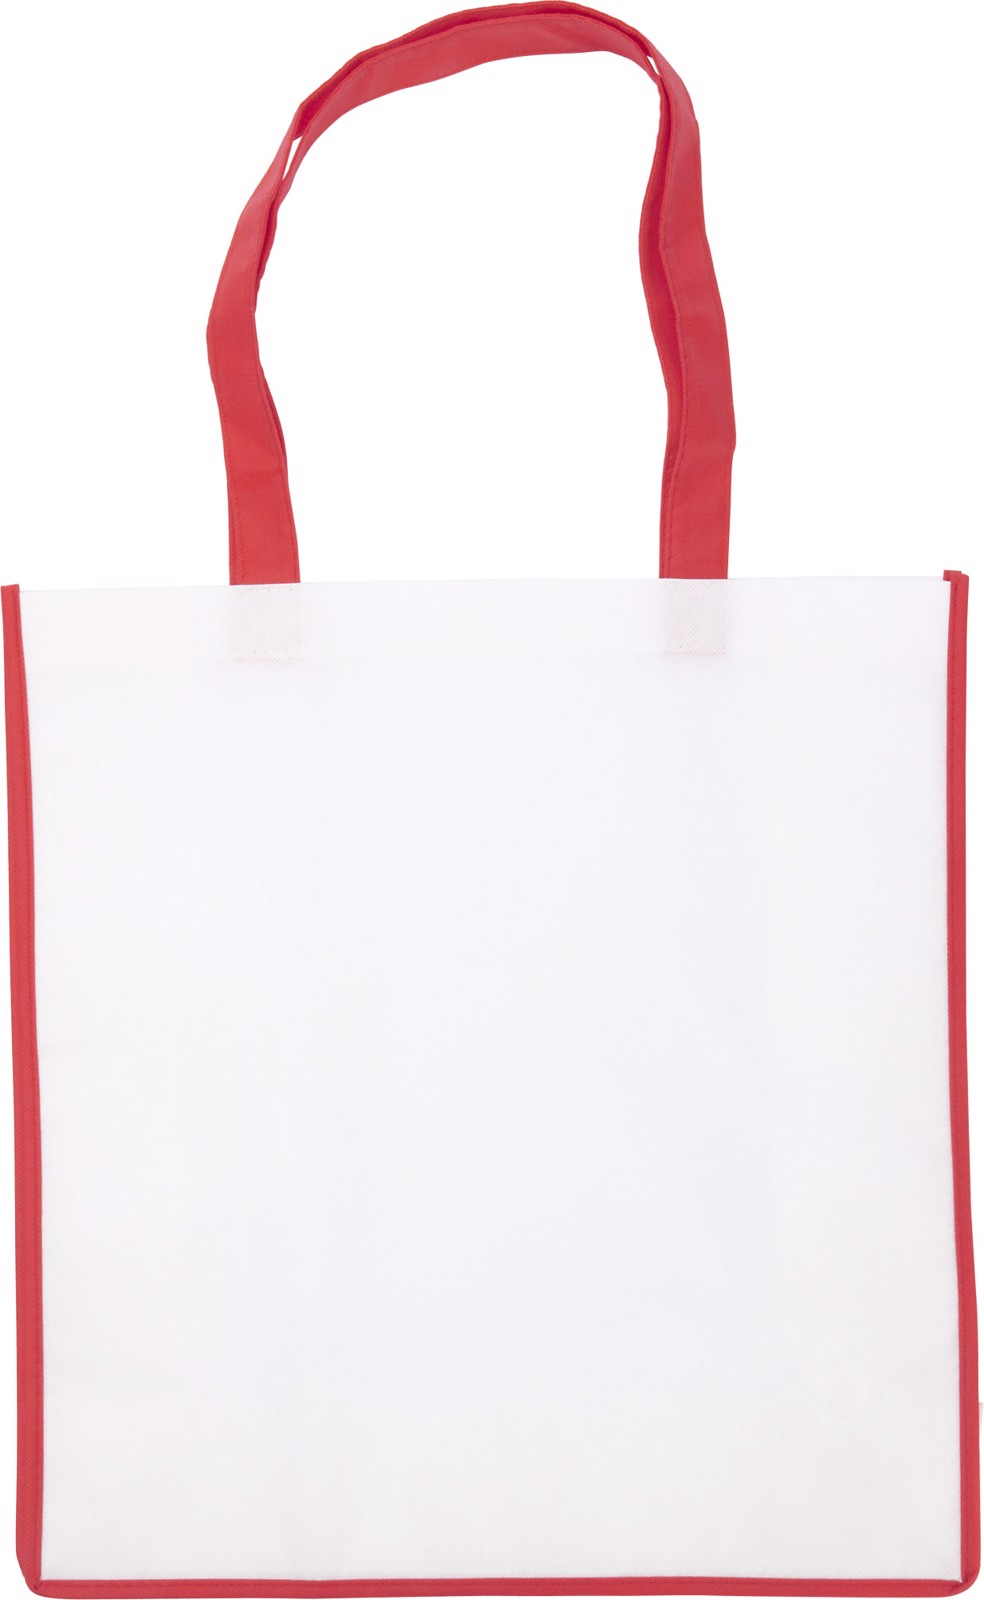 Nonwoven (80 gr/m²) bag - Red